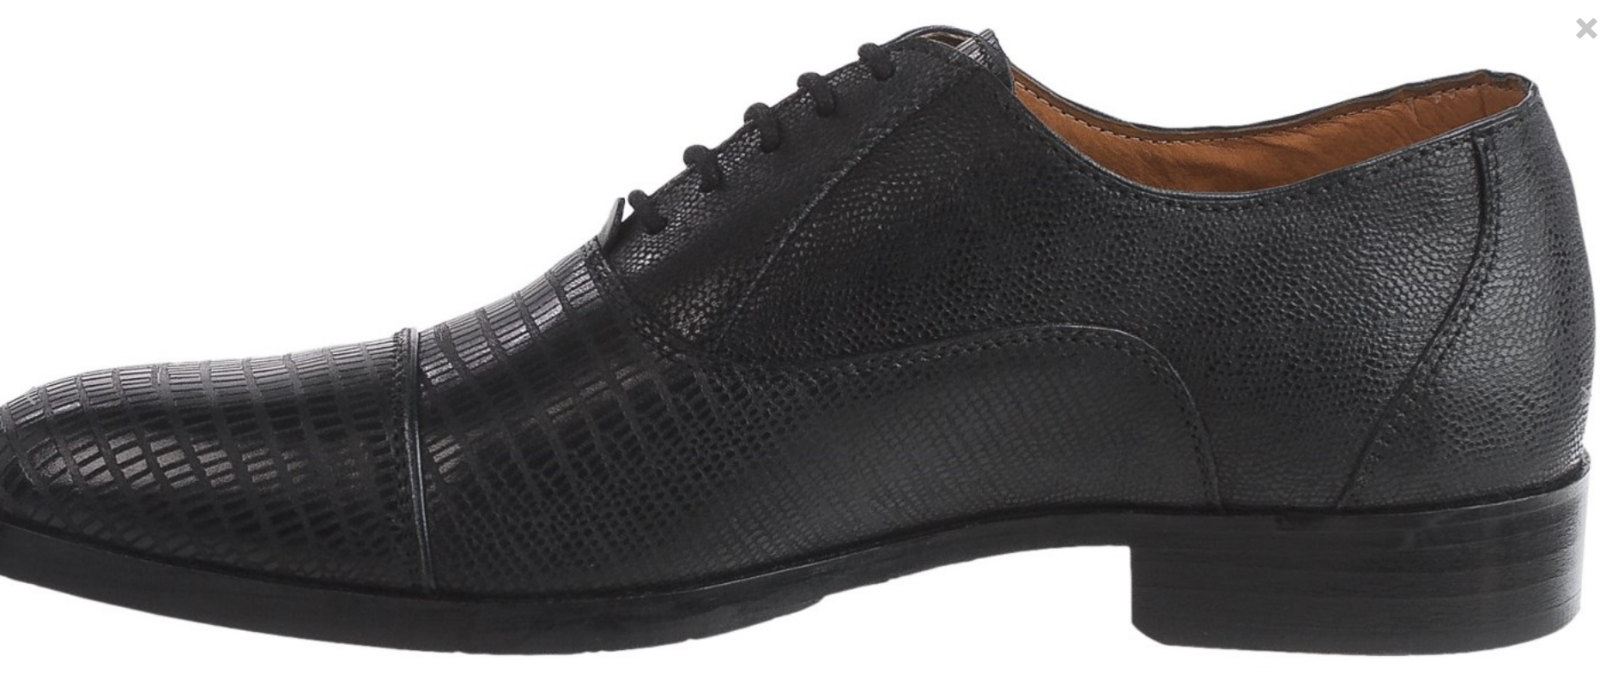 NEW BLACK STEVE MADDEN RIZZARD BLACK NEW LEATHER OXFORD SHOES Uomo 10.5 EMBOSSED LEATHER 4db9b7